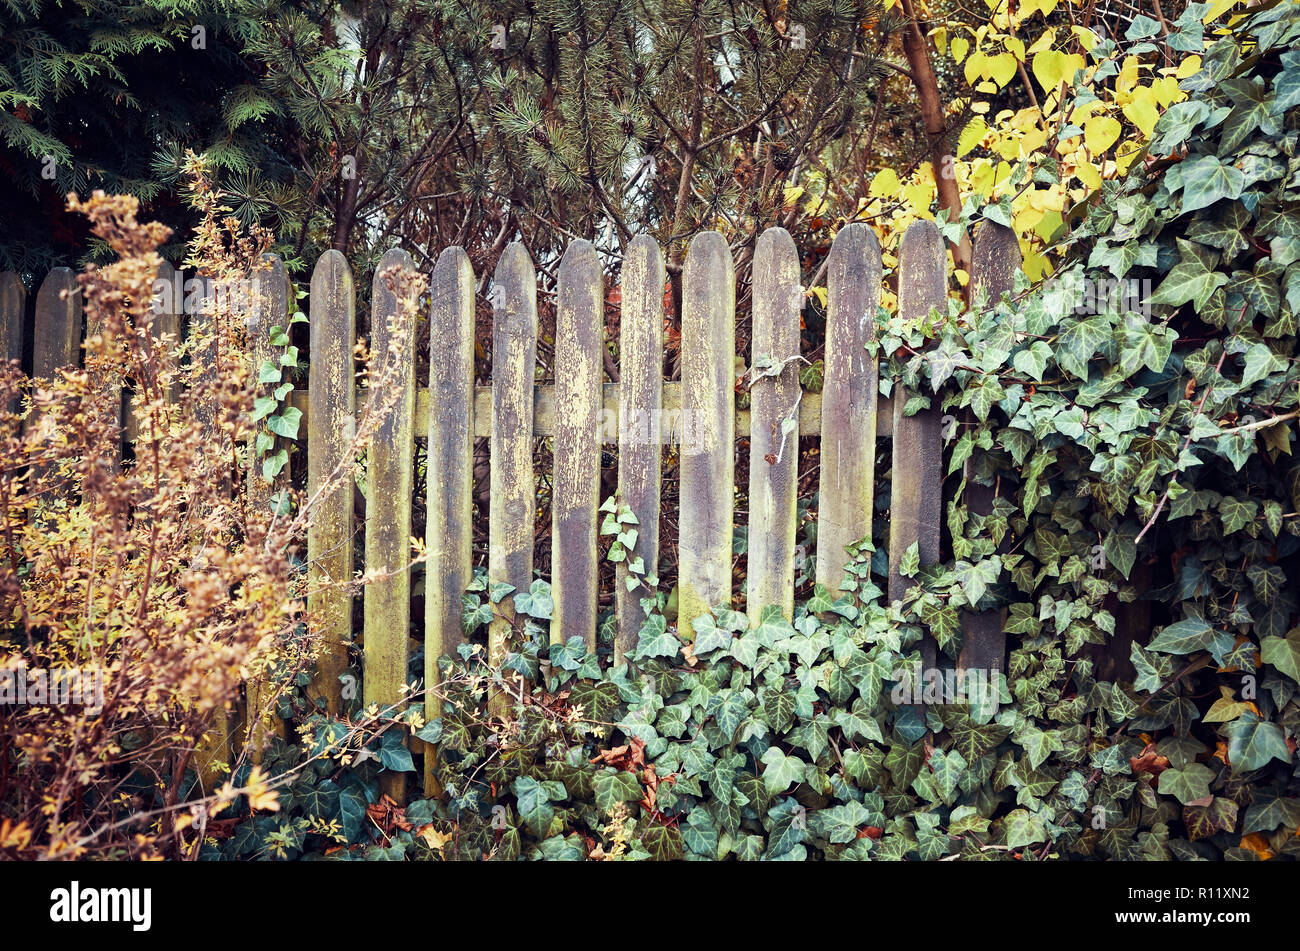 Old mossy wooden fence covered with plants, color toning applied. - Stock Image